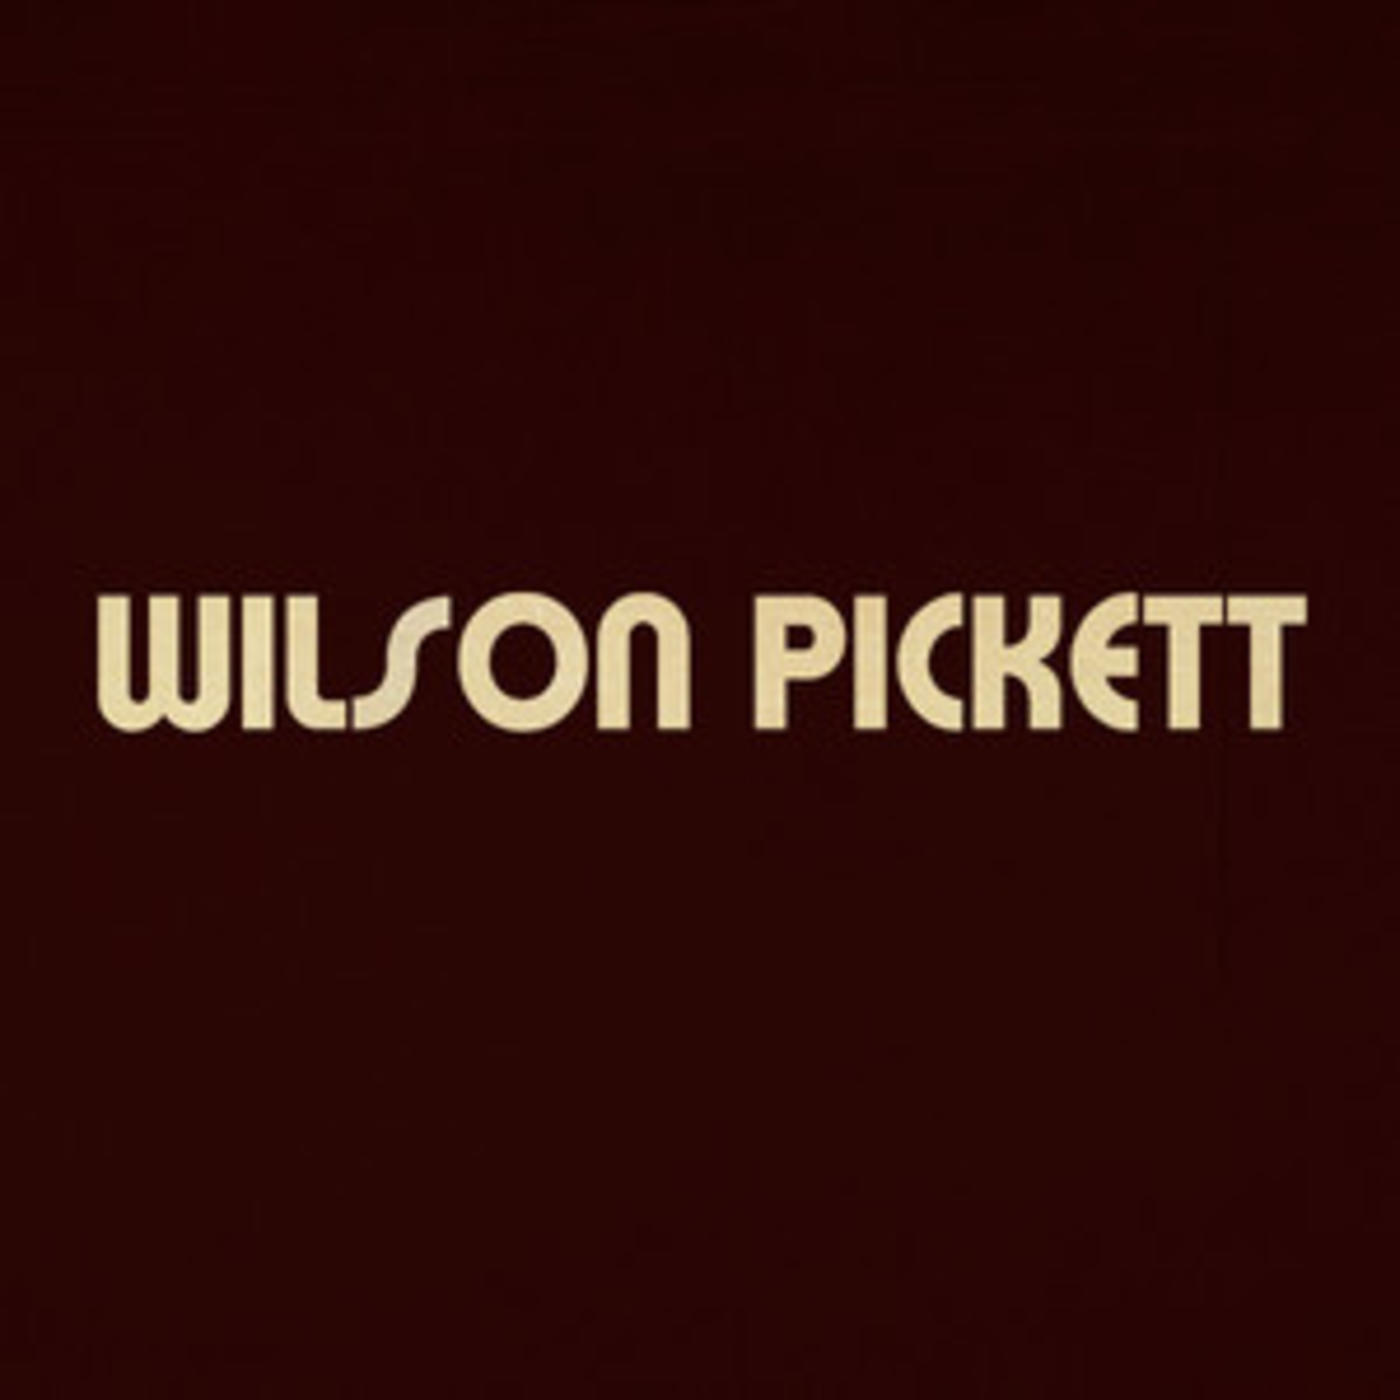 Wilson Pickett - Official Playlist - Land Of 1000 Dances, Mustang Sally, In The Midnight Hour